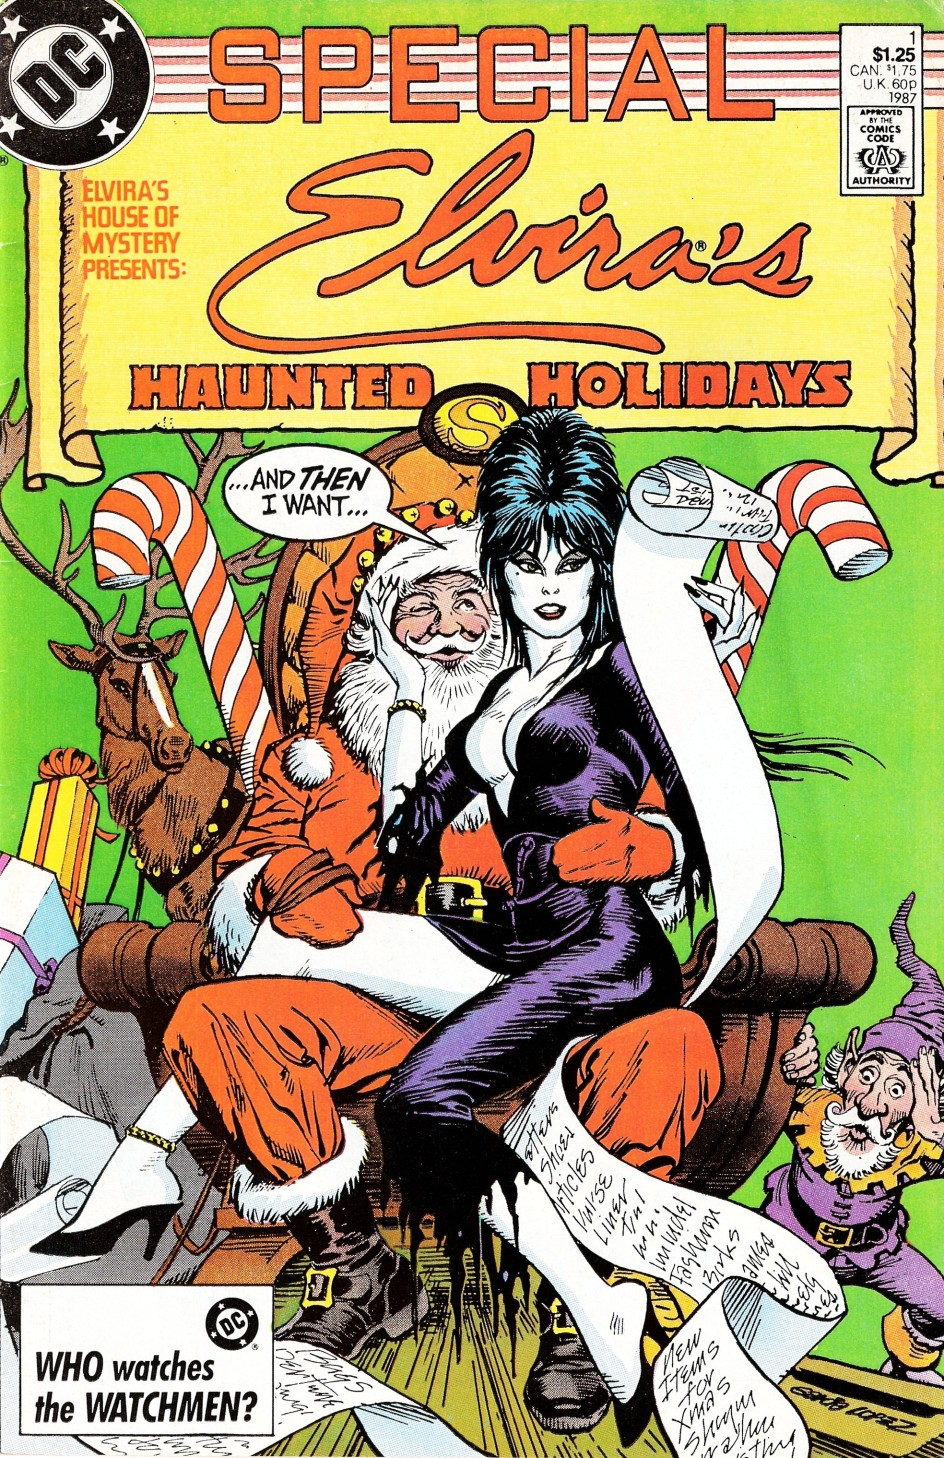 1987 George Perez Cover Elvira's House of Mystery Special - Elvira's Haunted Holidays 1